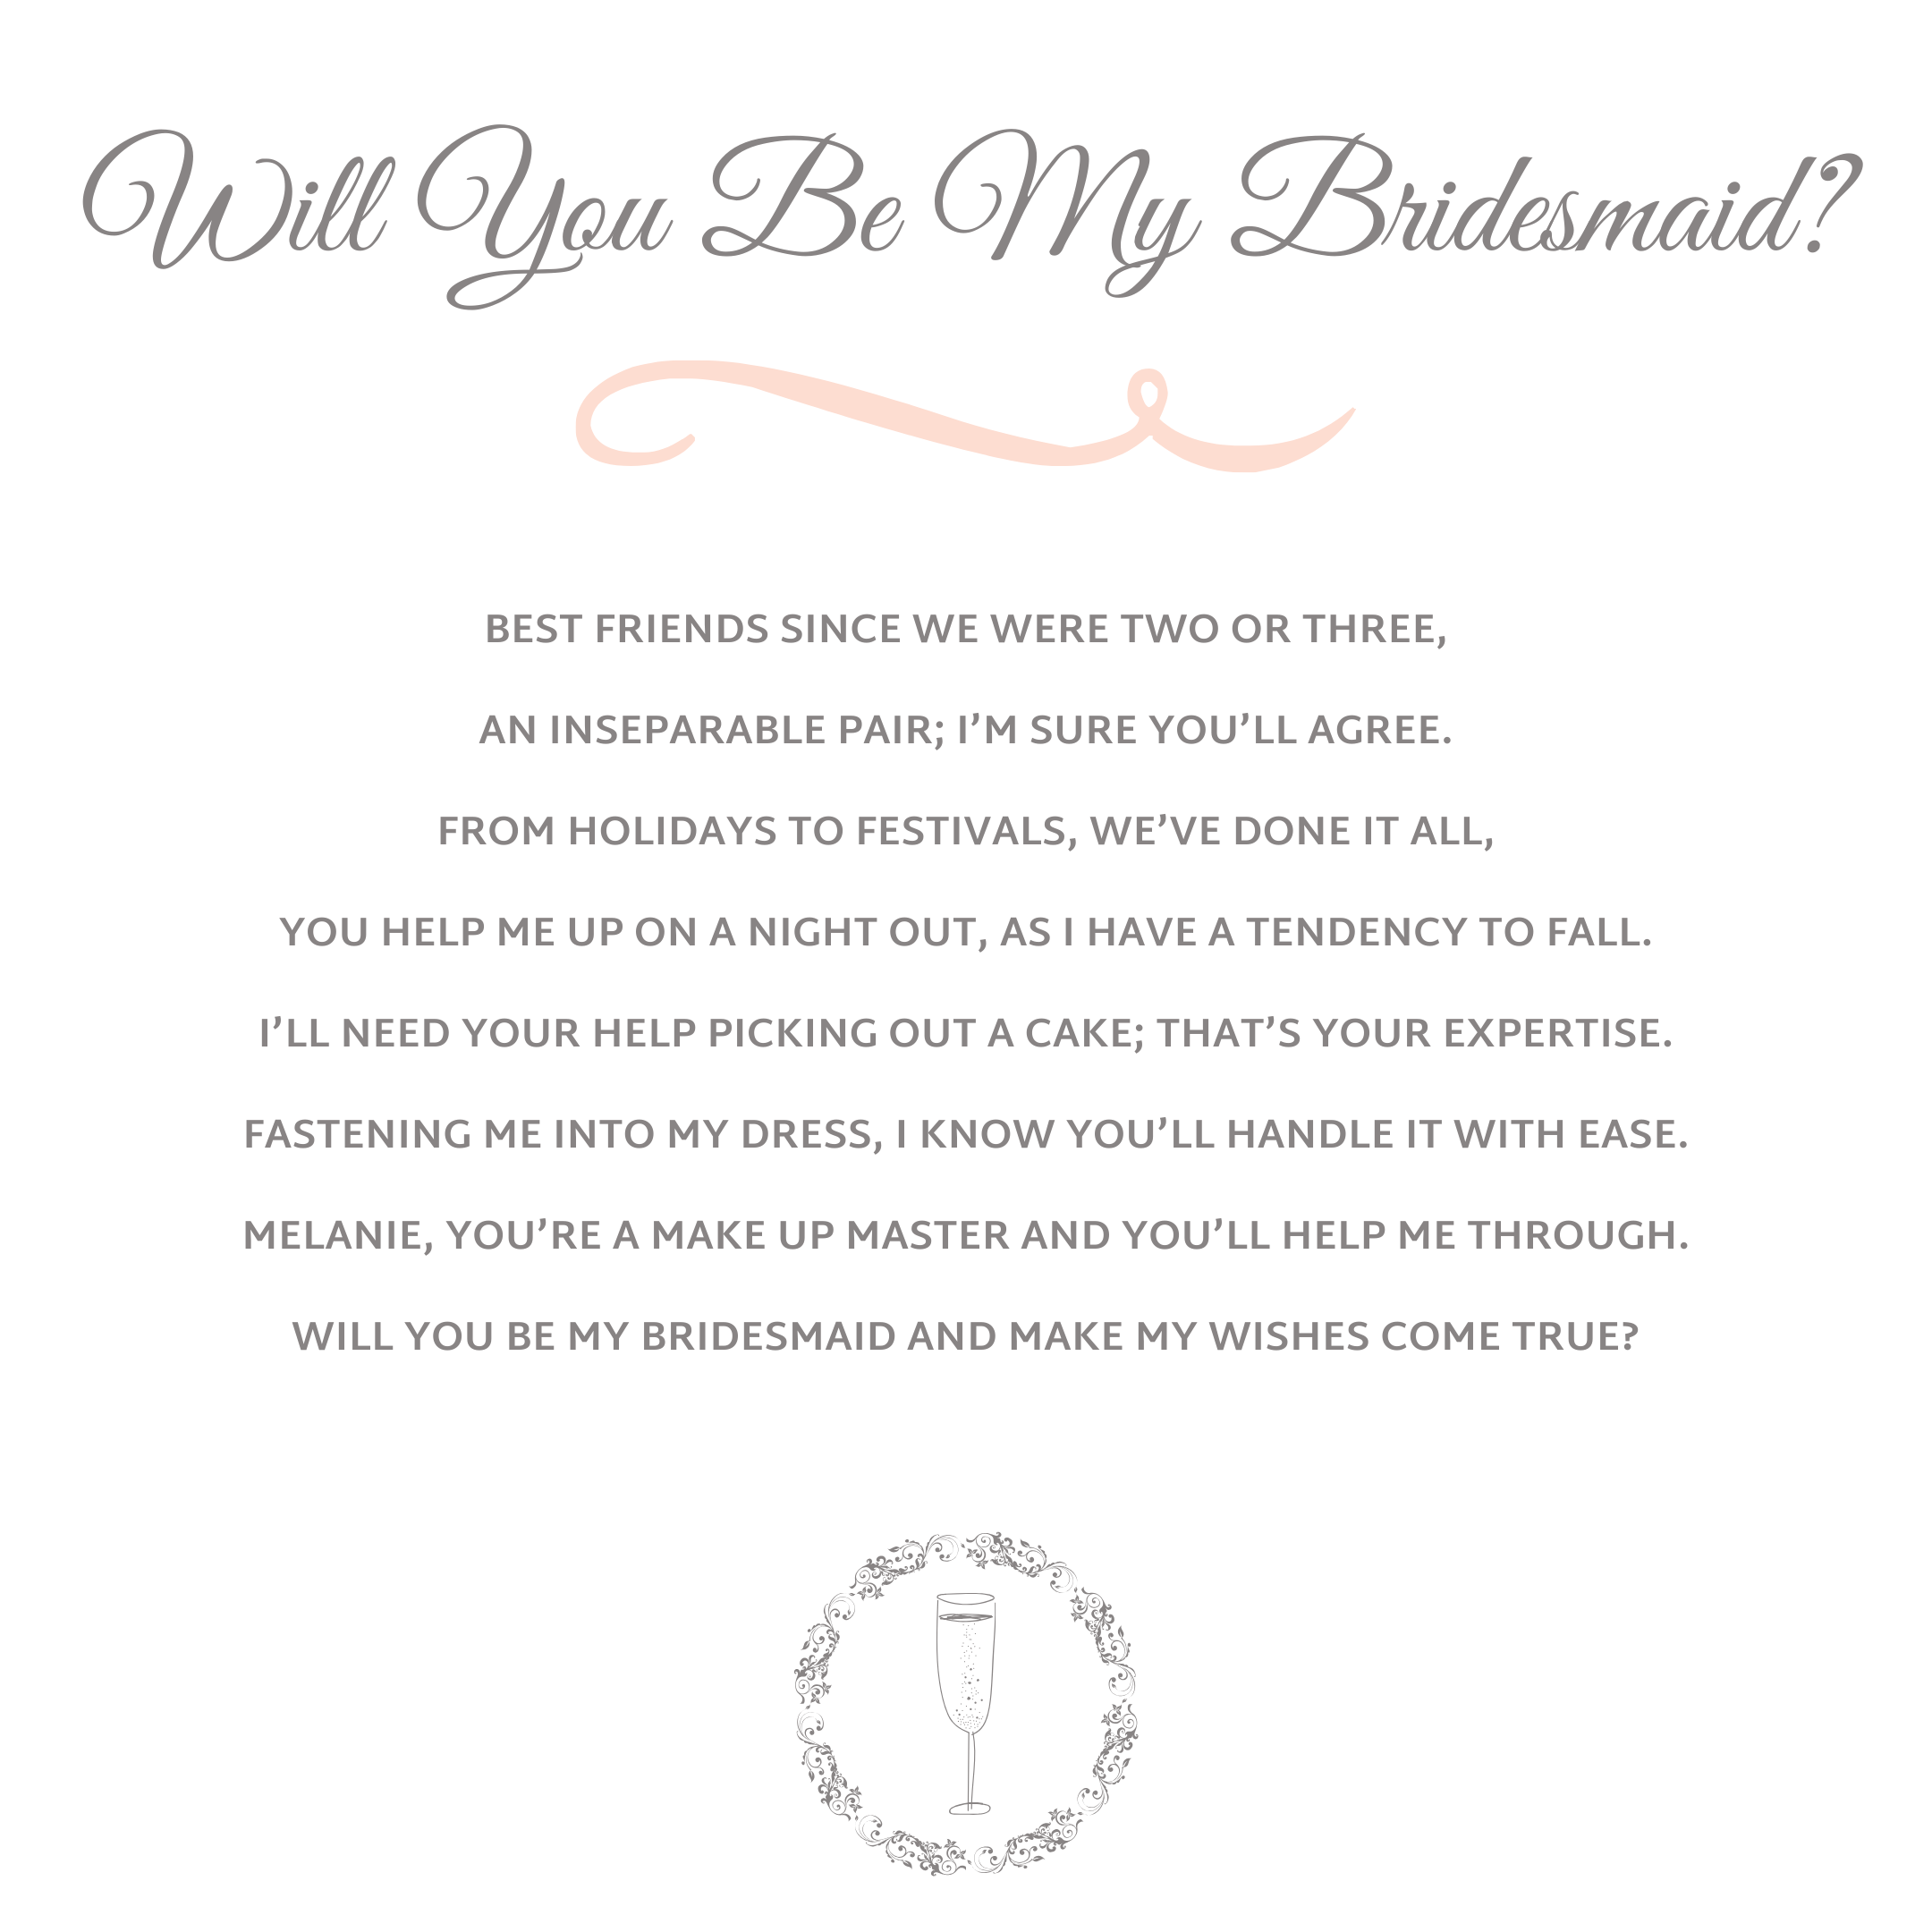 Why Choose Bespoke Poetry for Your Wedding Day? - Wedding Reel